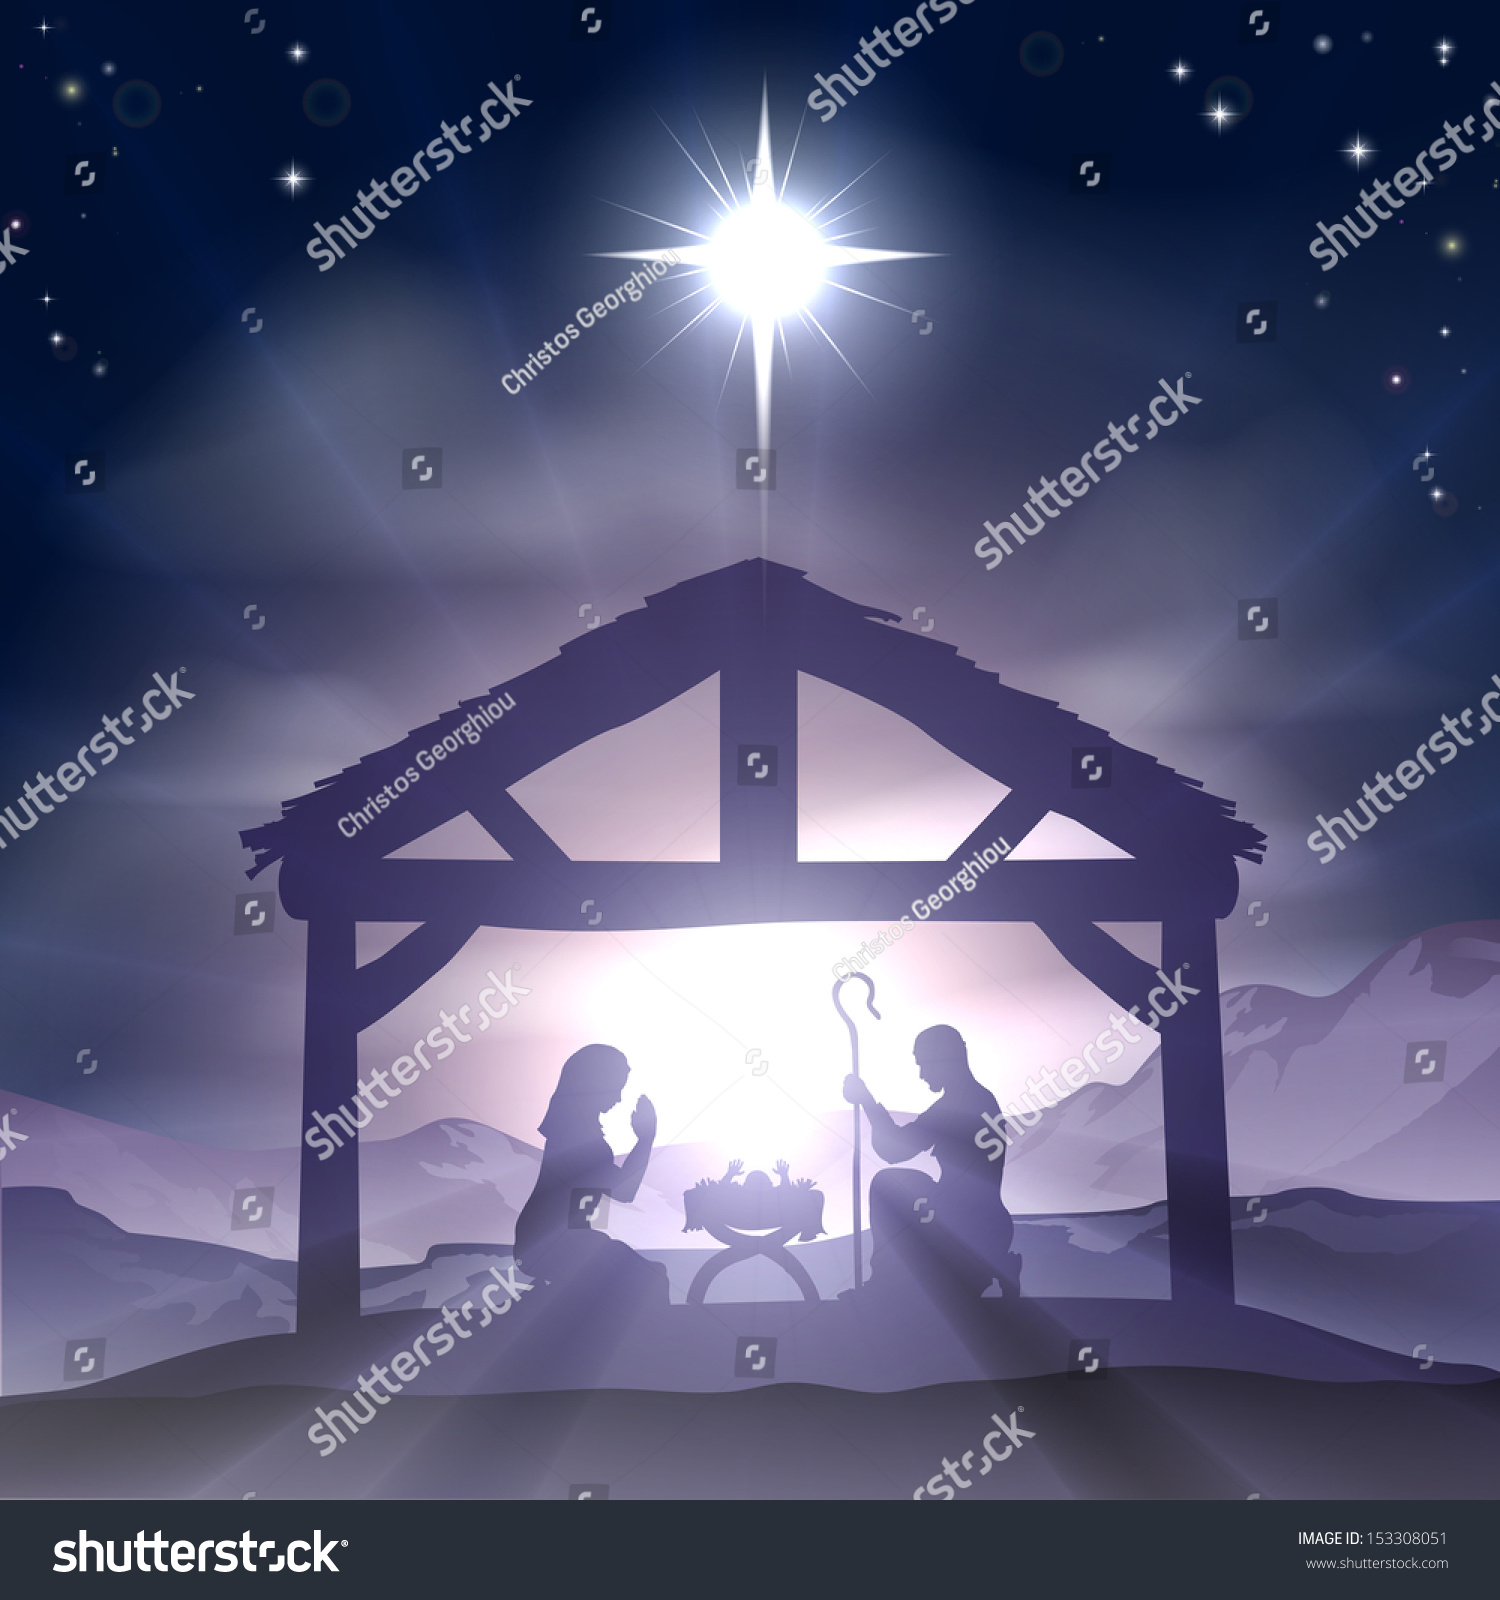 Star of bethlehem outdoor christmas decoration - Christmas Christian Nativity Scene With Baby Jesus In The Manger In Silhouette And Star Of